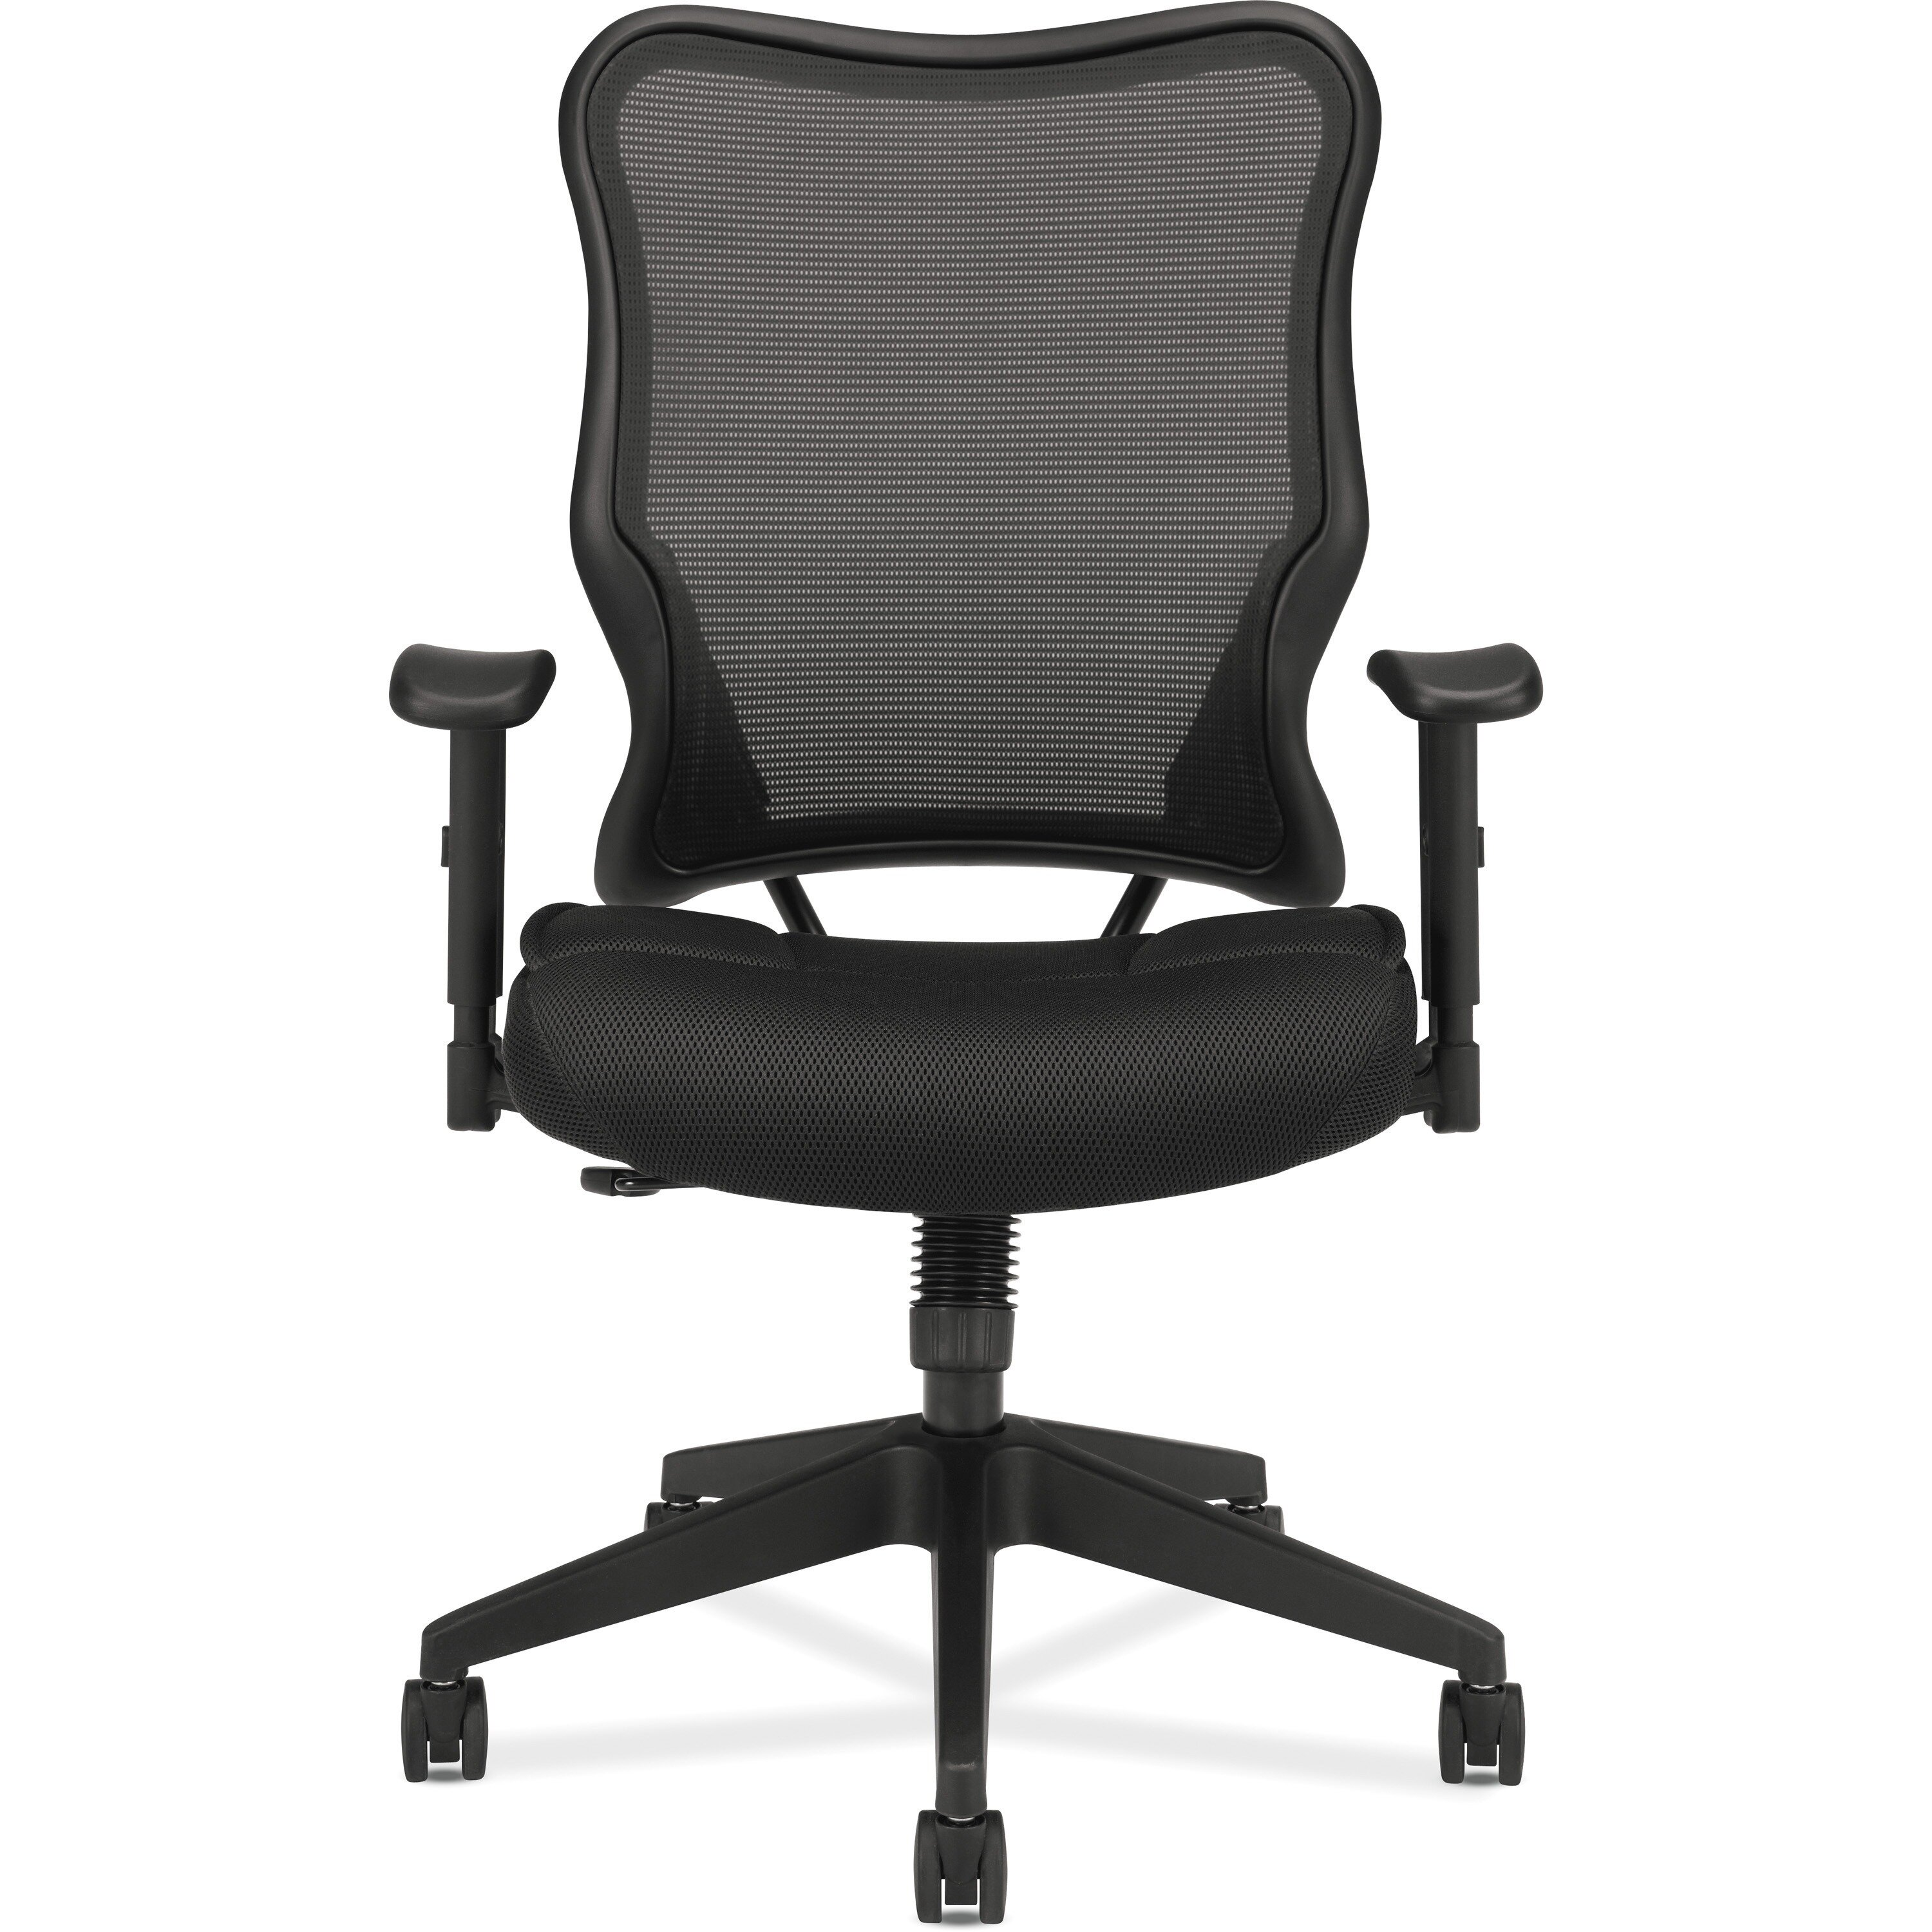 miller amazing chair chairs hydraulic office back pick room decoration surprising executive high ergonomic awesome leather on desk design brown extraordinary computer